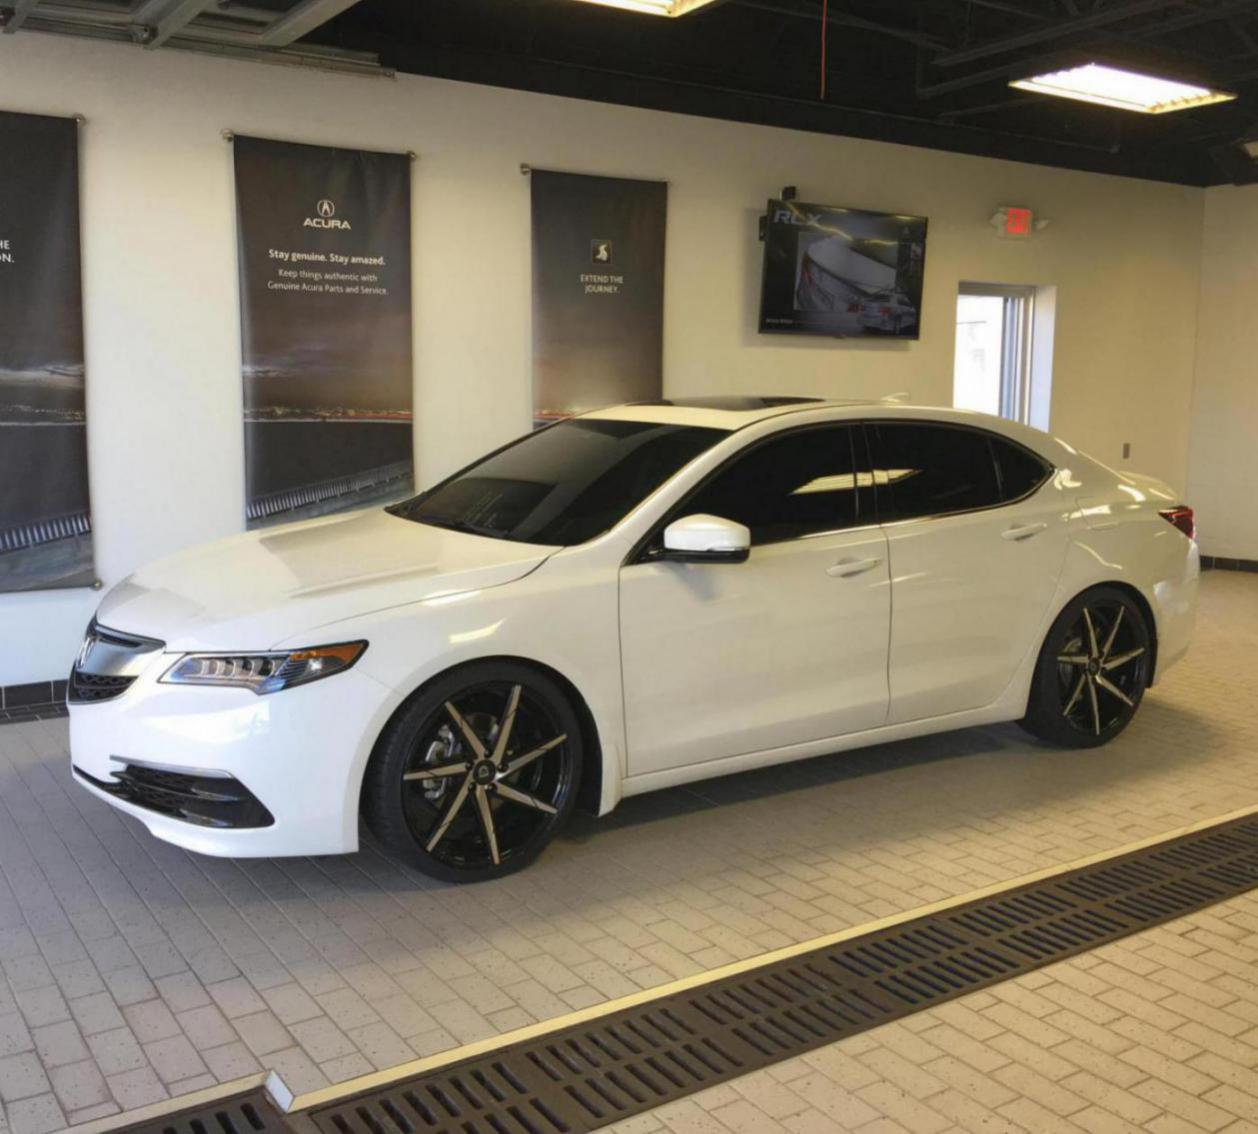 2016 Acura Tlx Lowered On H&R Springs And Lexani Css-7